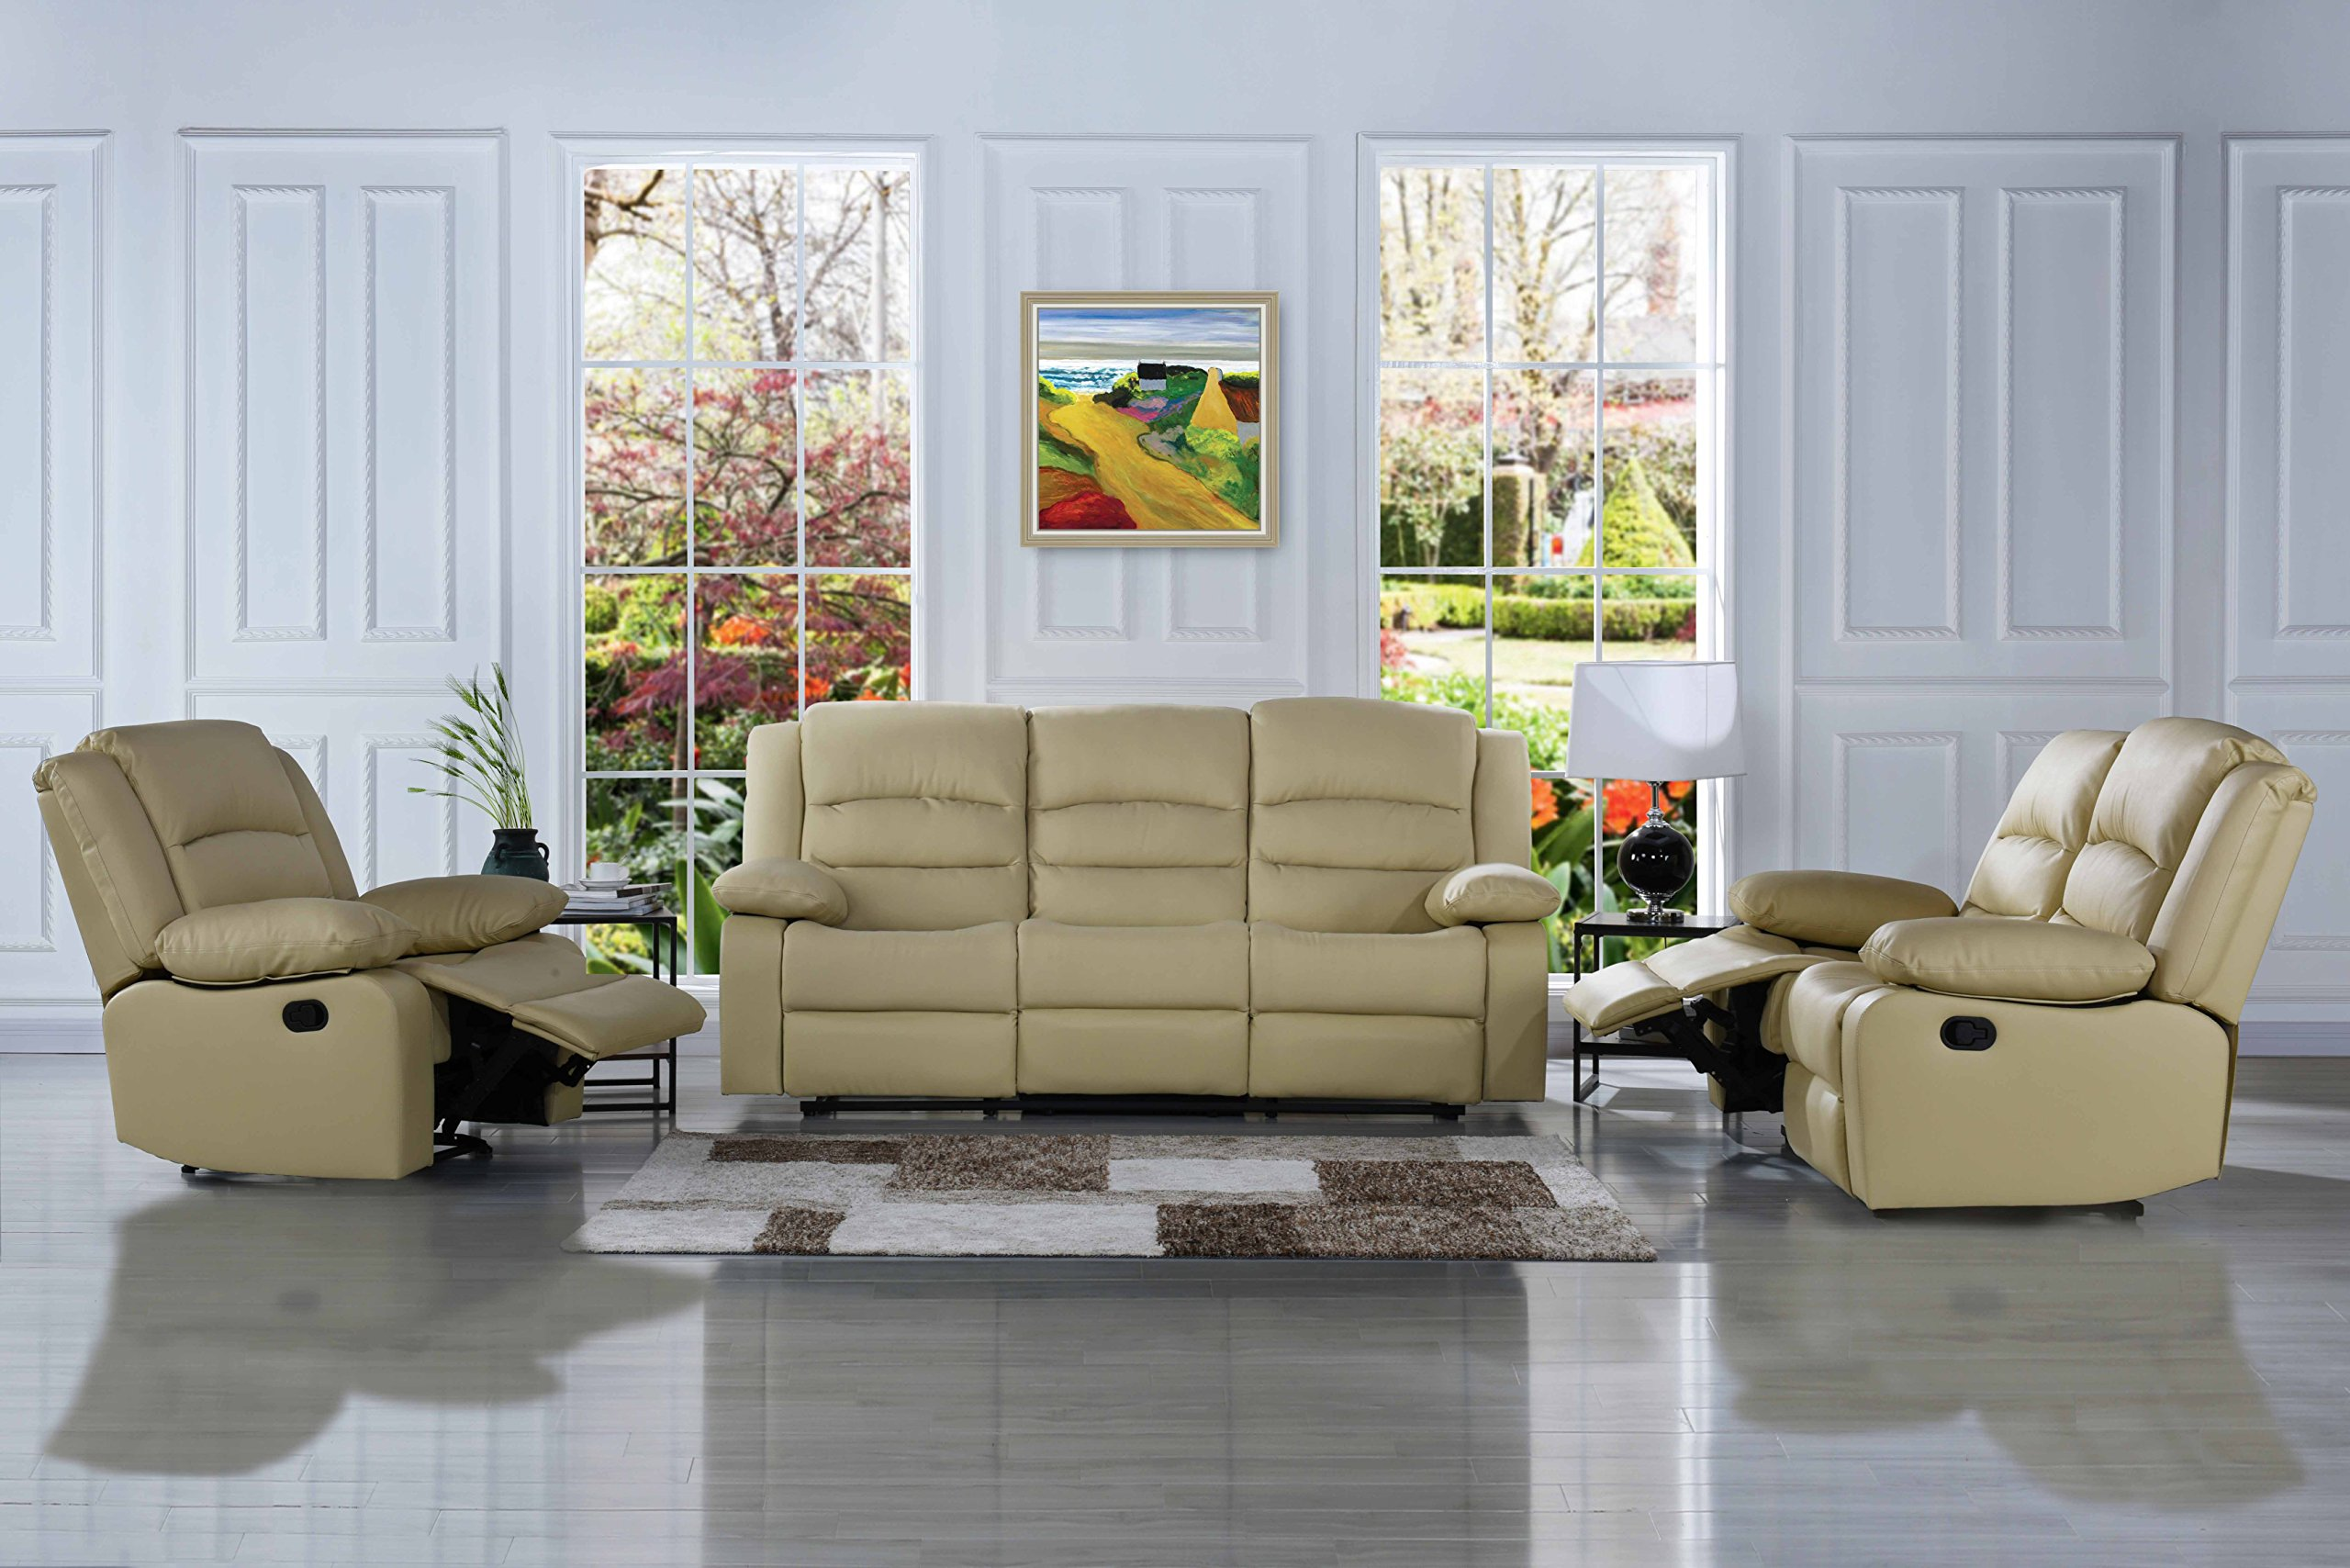 Divano Roma Furniture Traditional Classic Reclining Sofa Set - Real Grain Leather Match - Double Recliner, Loveseat, Single Chair (Beige) by Divano Roma Furniture